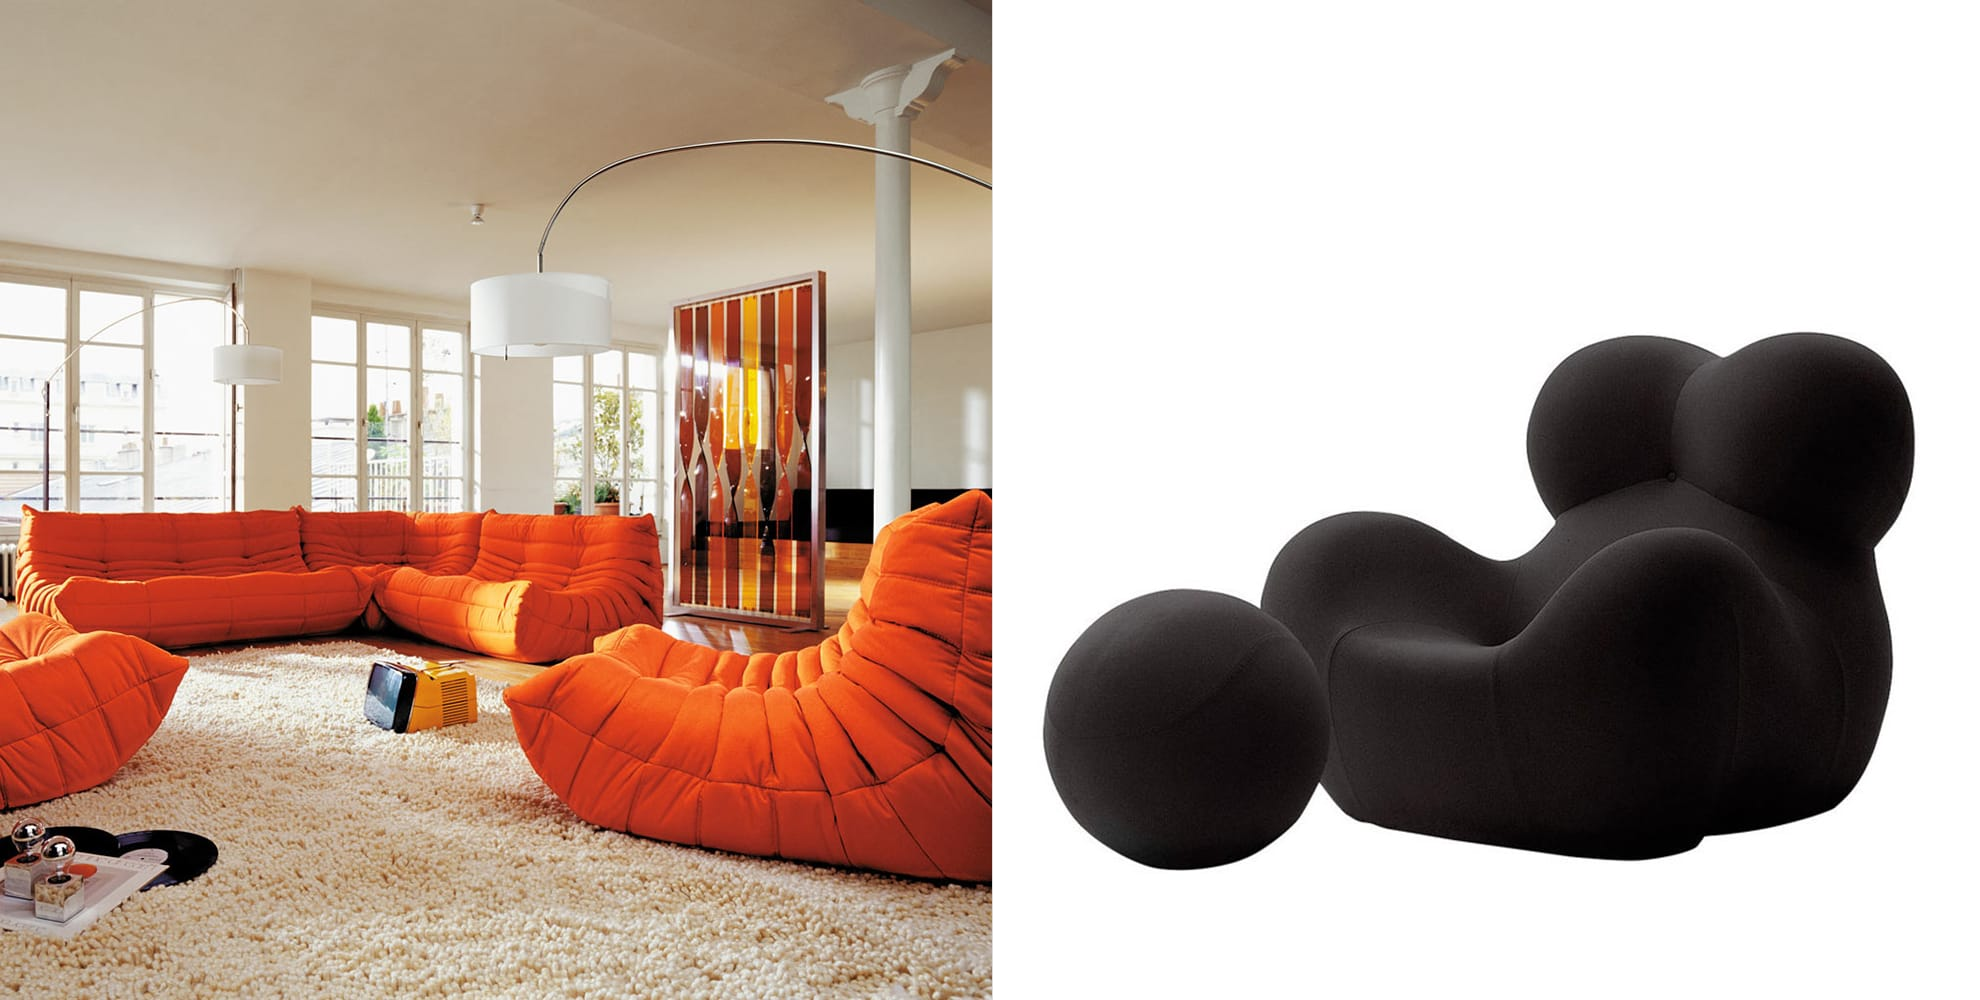 Togo Sofas by Ligne Roset, Up 5 Lounge Chair by Gaetano Pesce.